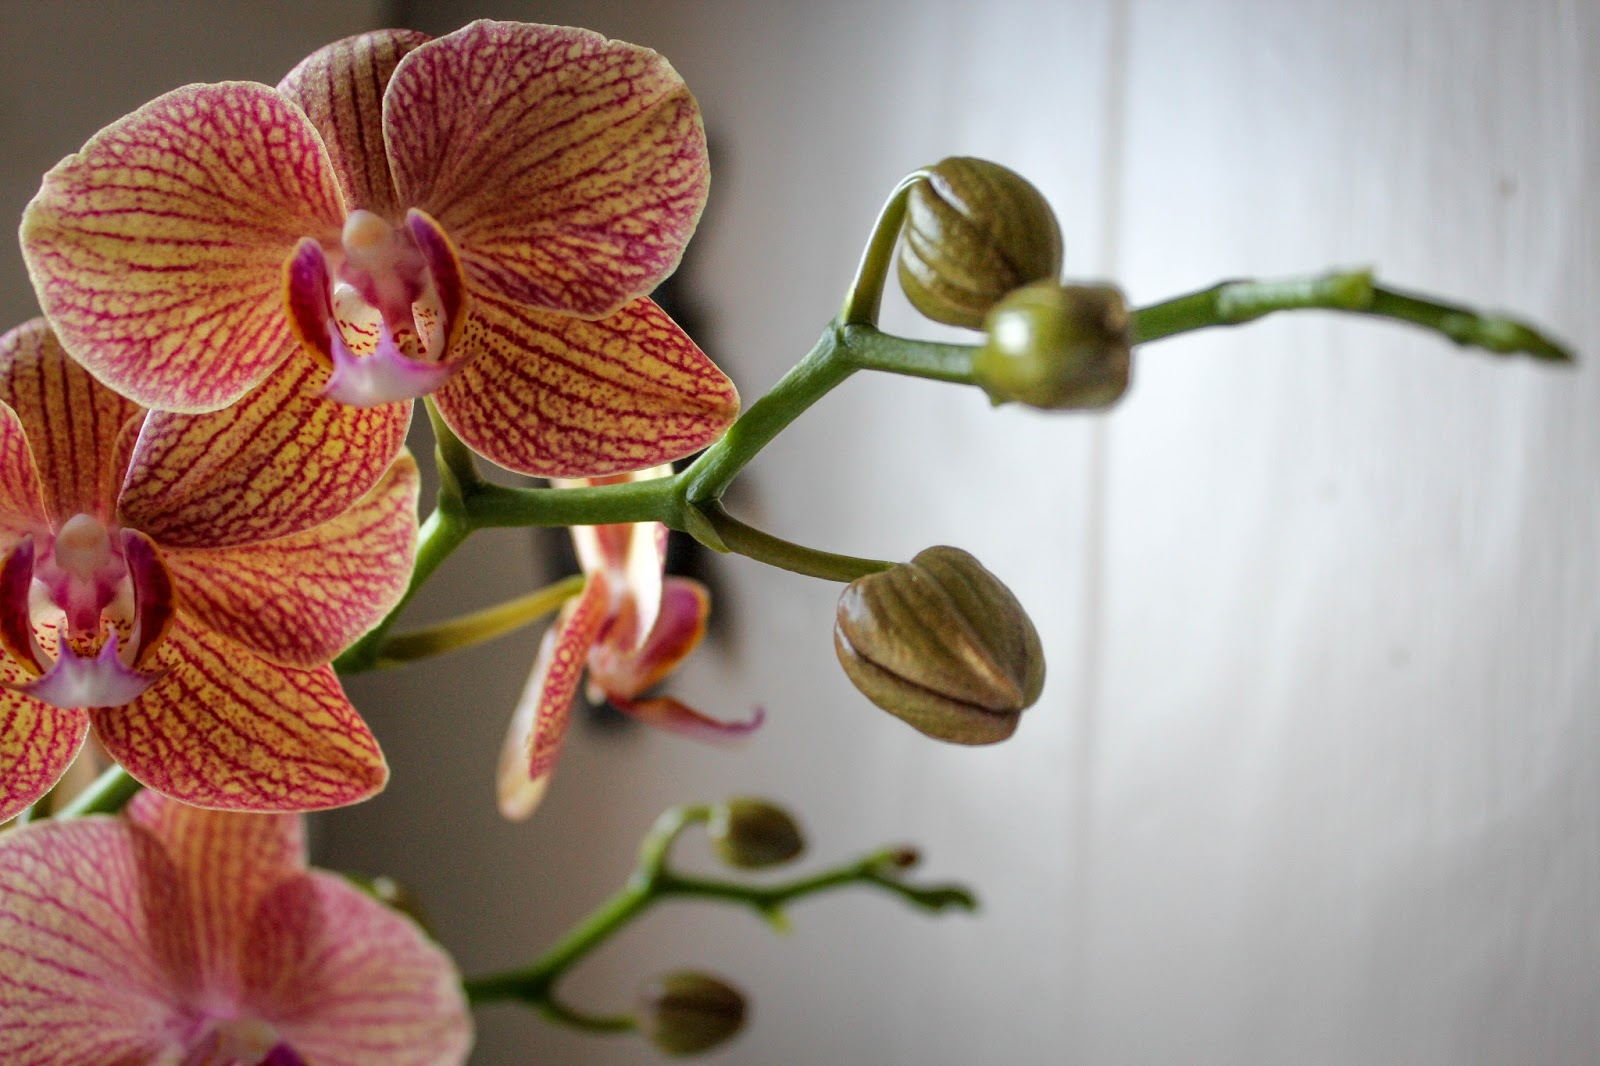 Care tip tuesday phalaenopsis orchid plants vannoort events for Orchidea phalaenopsis cura